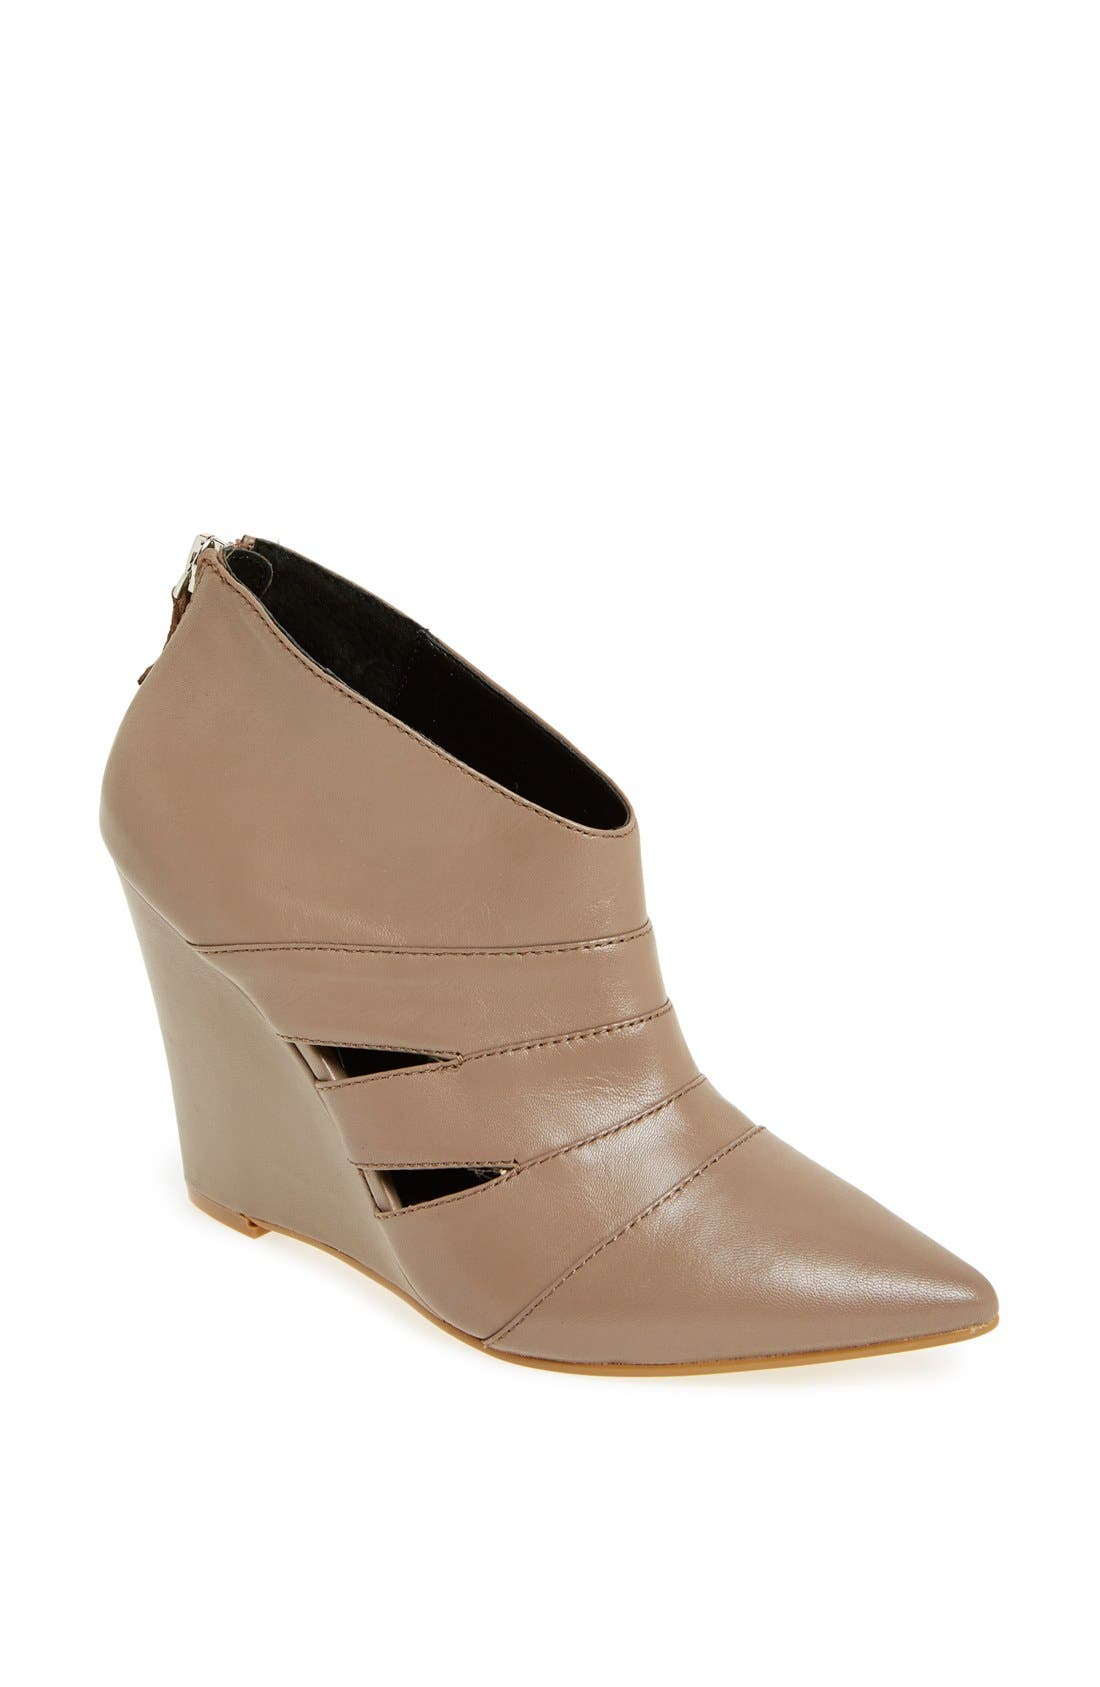 Alternate Image 1 Selected - Trouvé 'Tilly' Pointy Toe Bootie